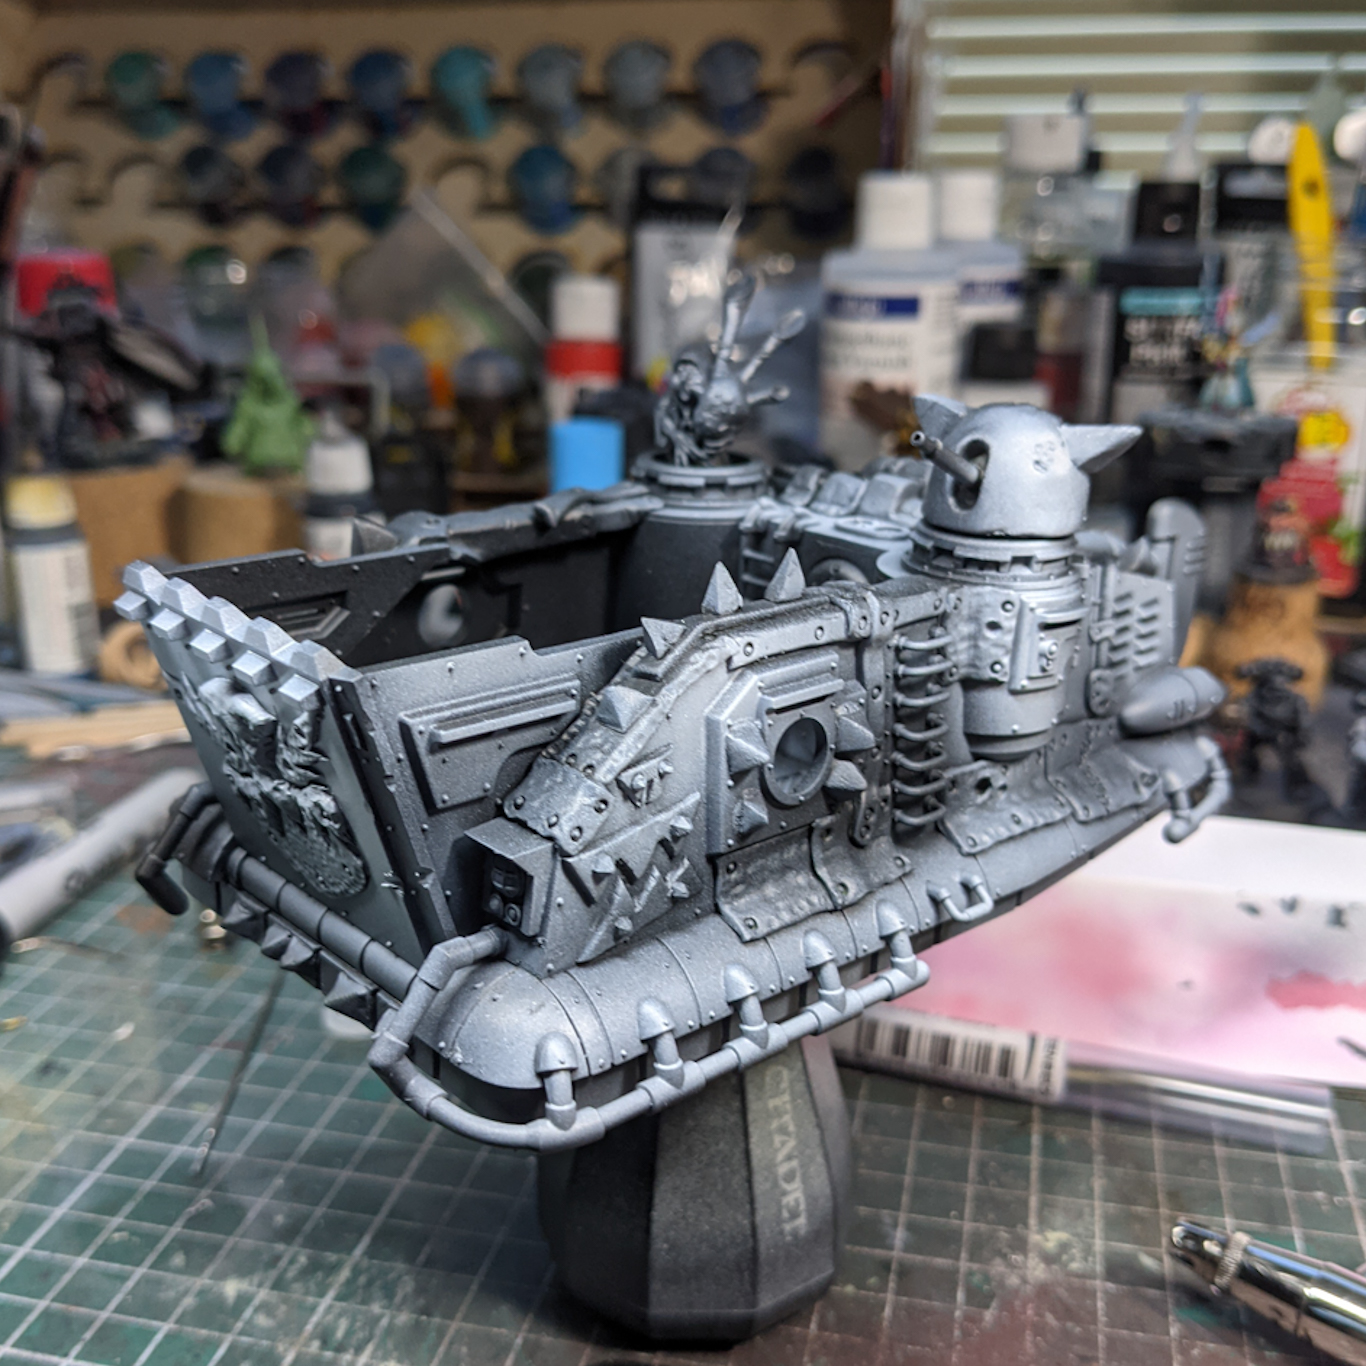 A model hovercraft covered in Orkish glyphs, spikes, and pipes.